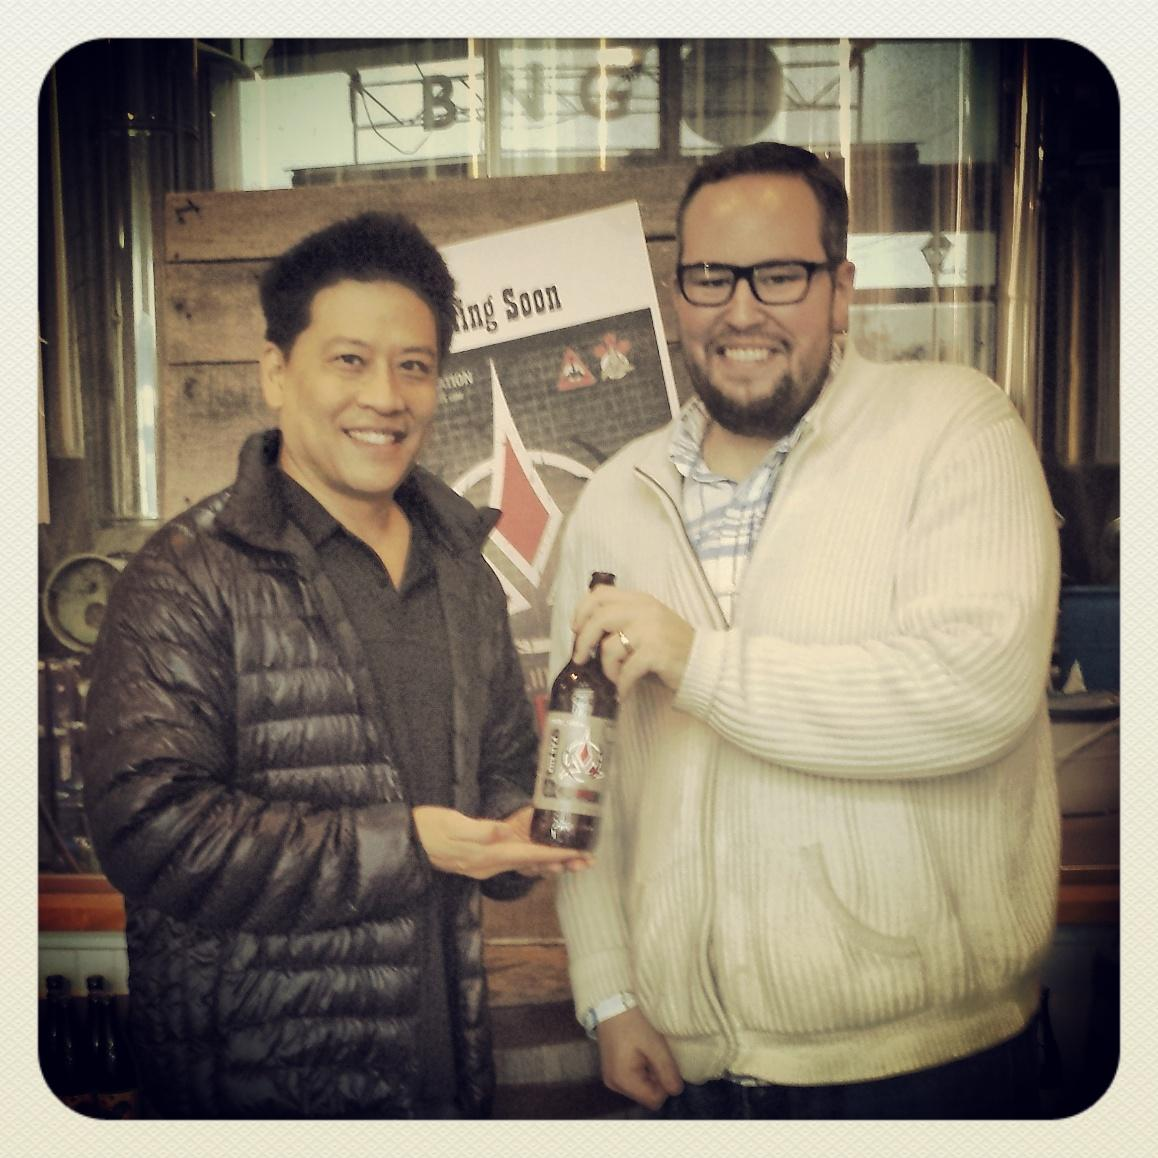 Hey guys, are you excited for @halcon_scificon? WELL, @GarrettRWang came by the brewery today! #WARNOG #TrekyLove! http://t.co/1kYq4YukHa